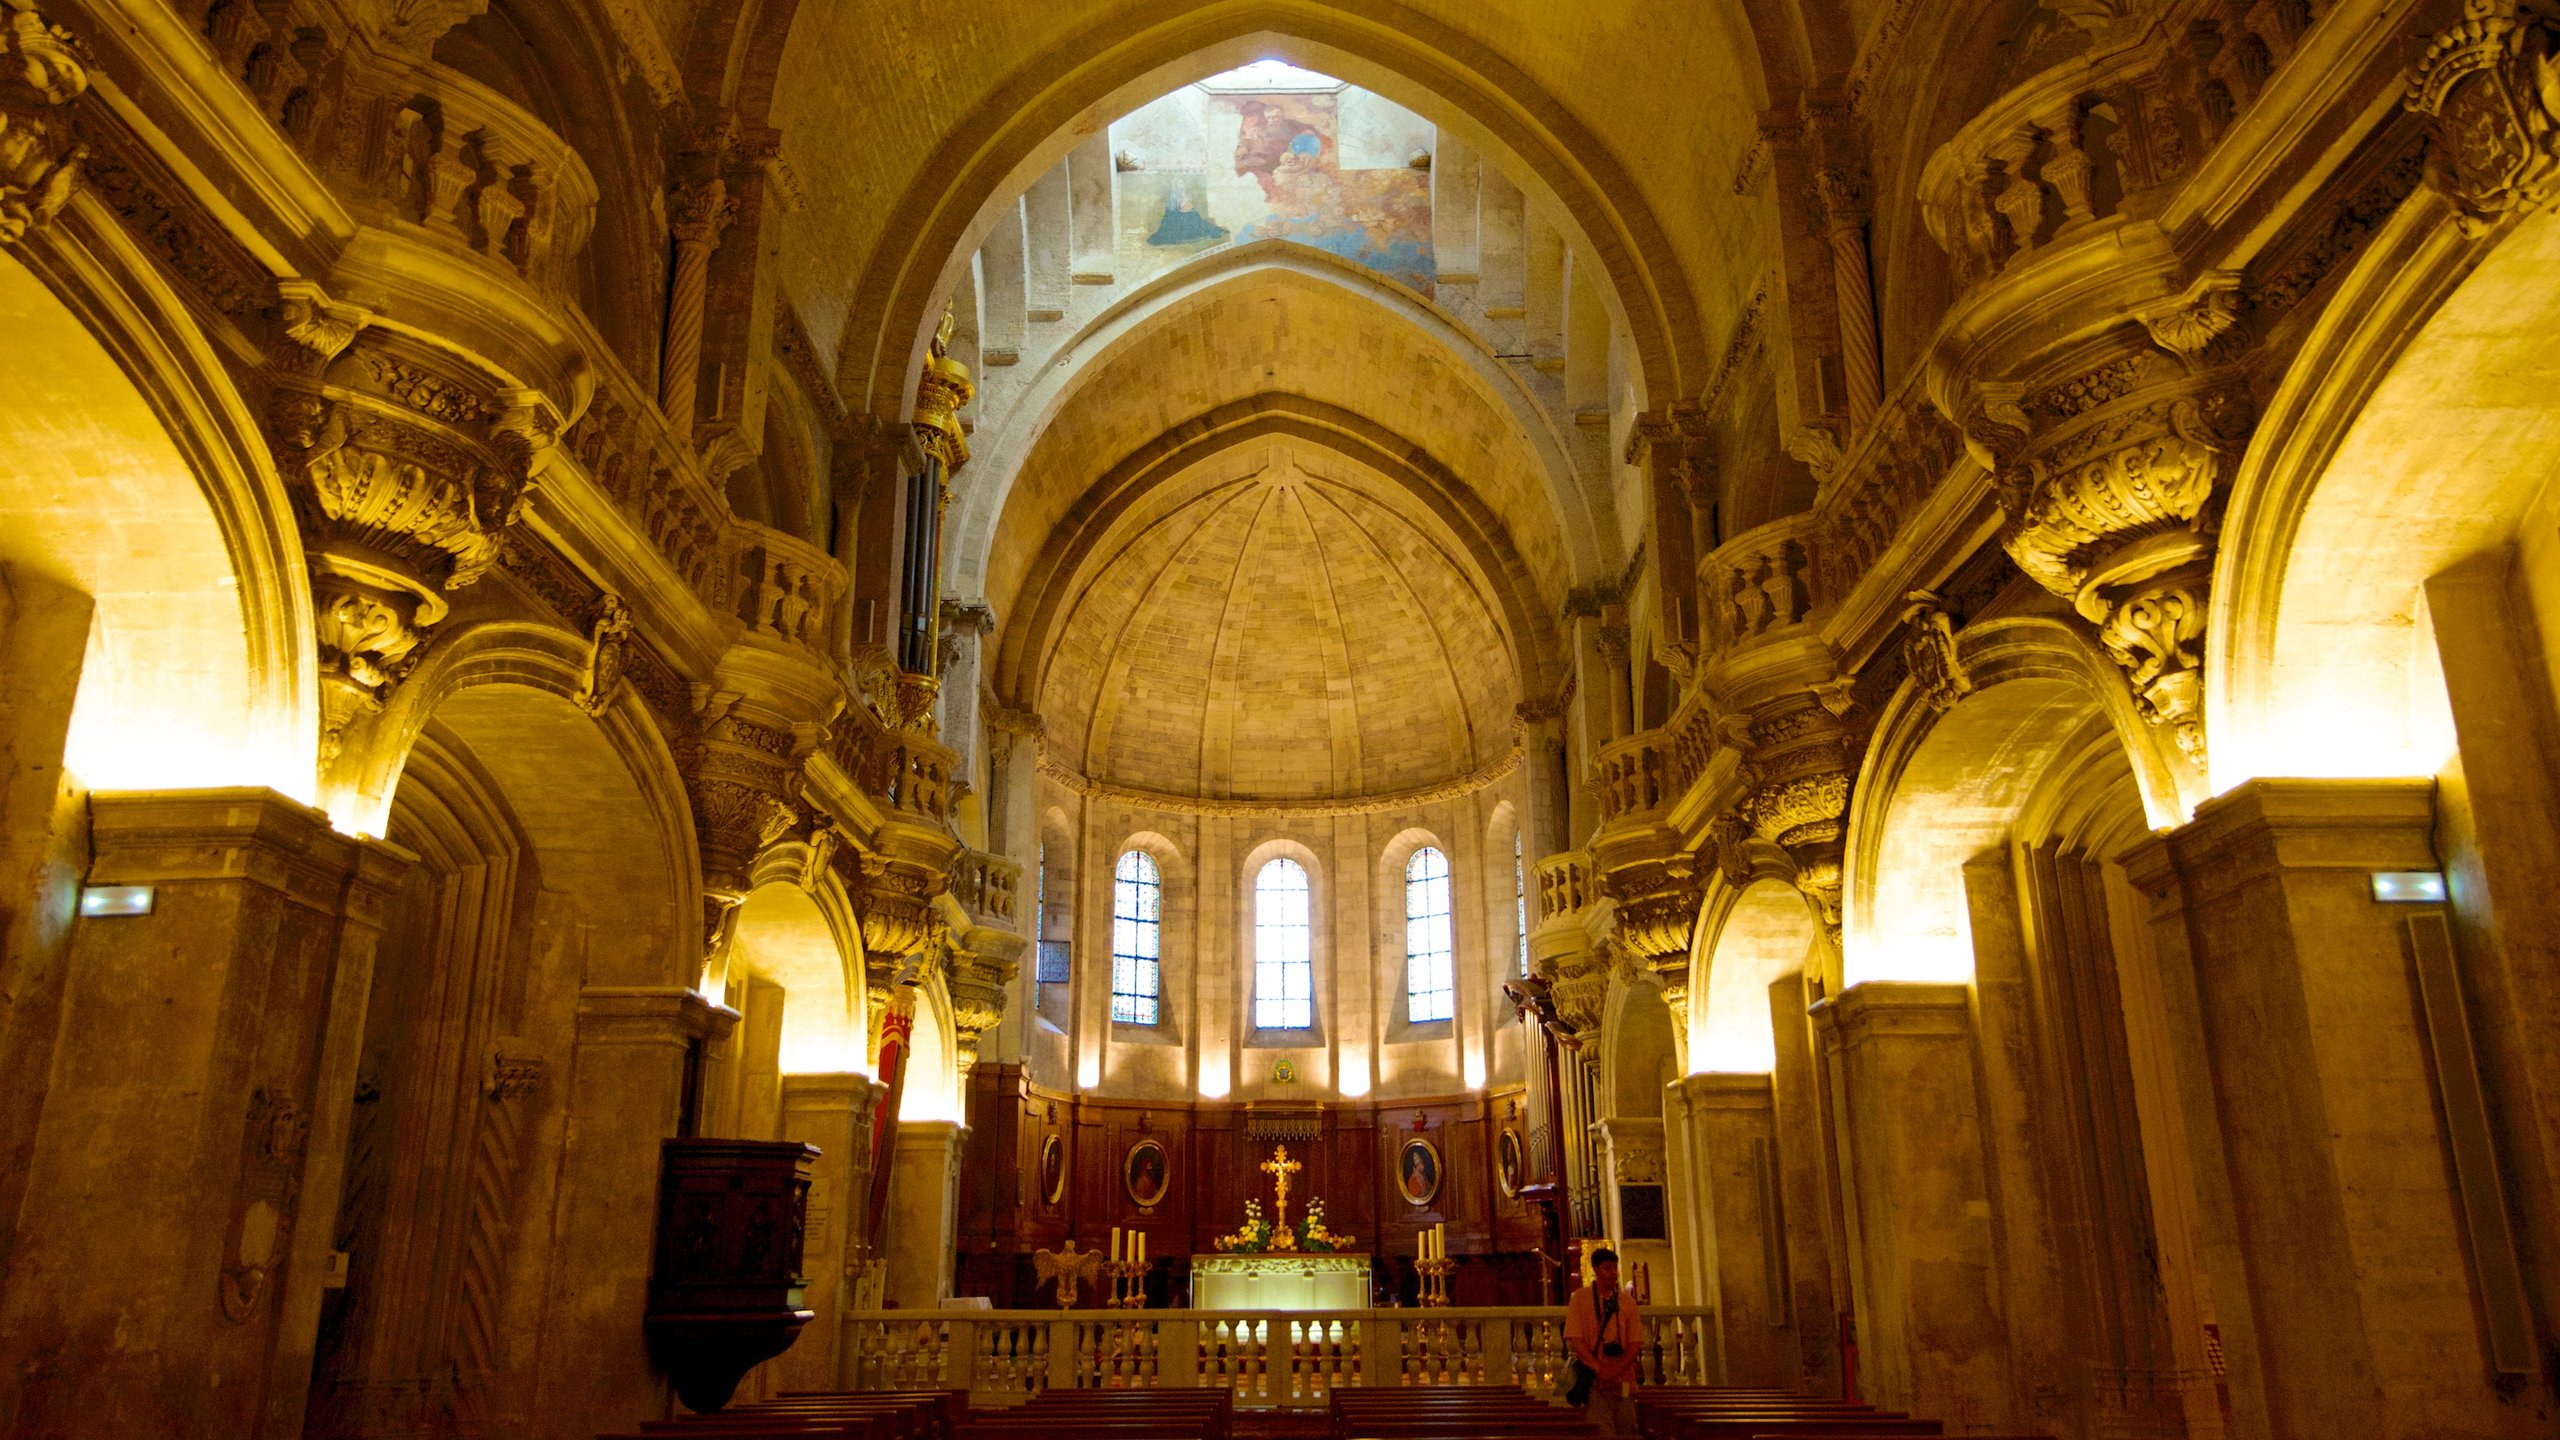 Celebrate mass in this resting place of 14th-century popes, or simply visit to enjoy the spiritual and artistic treasures within this beautiful Romanesque cathedral.